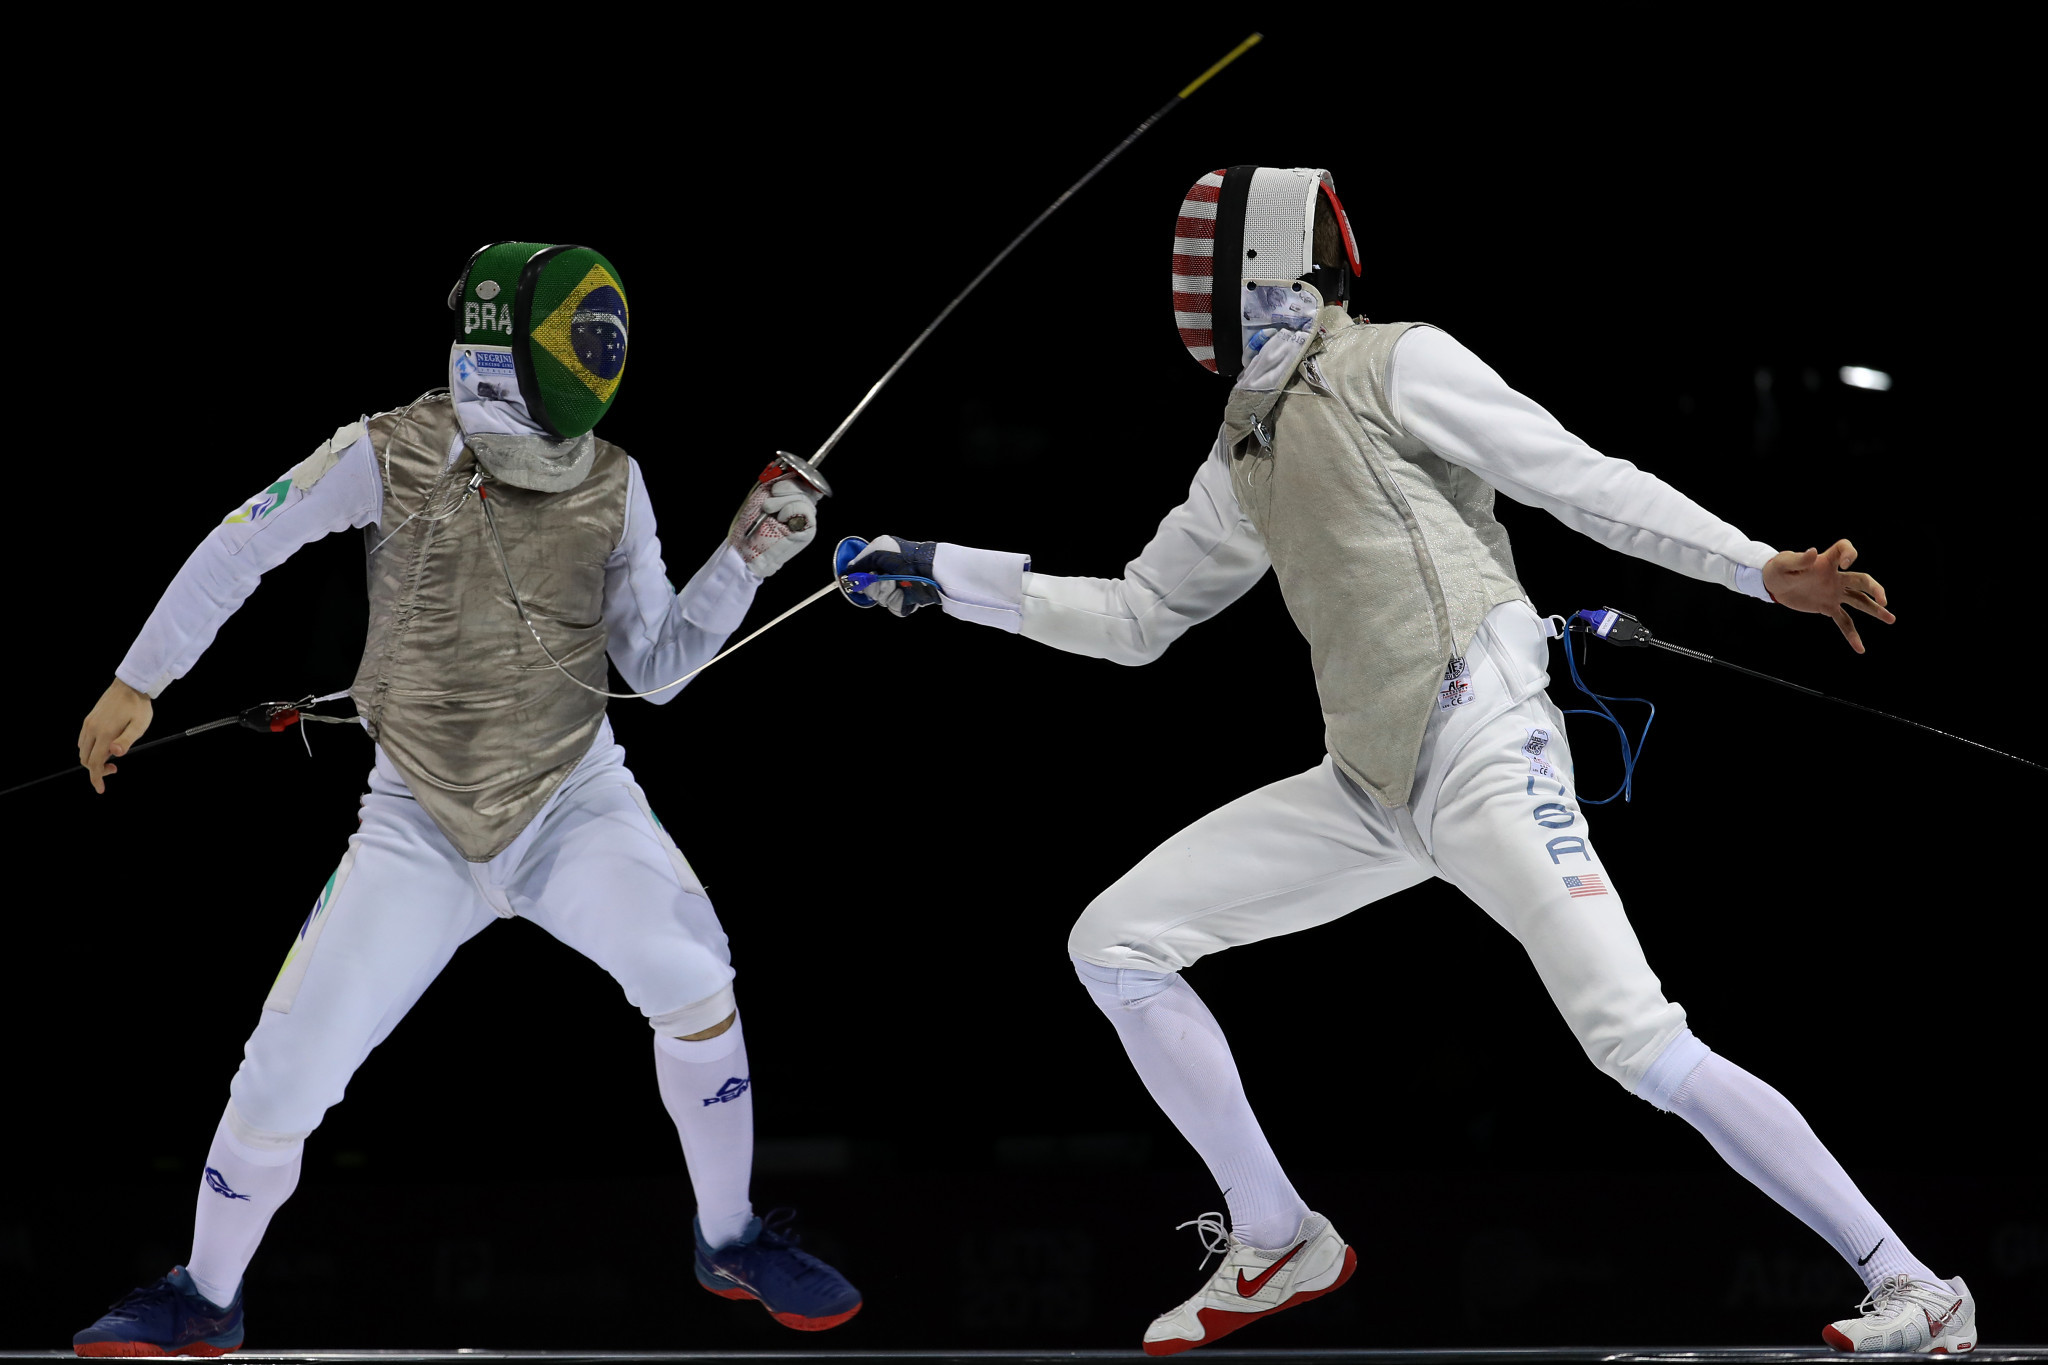 FIE pay tribute to Brazilian national fencing coach following death